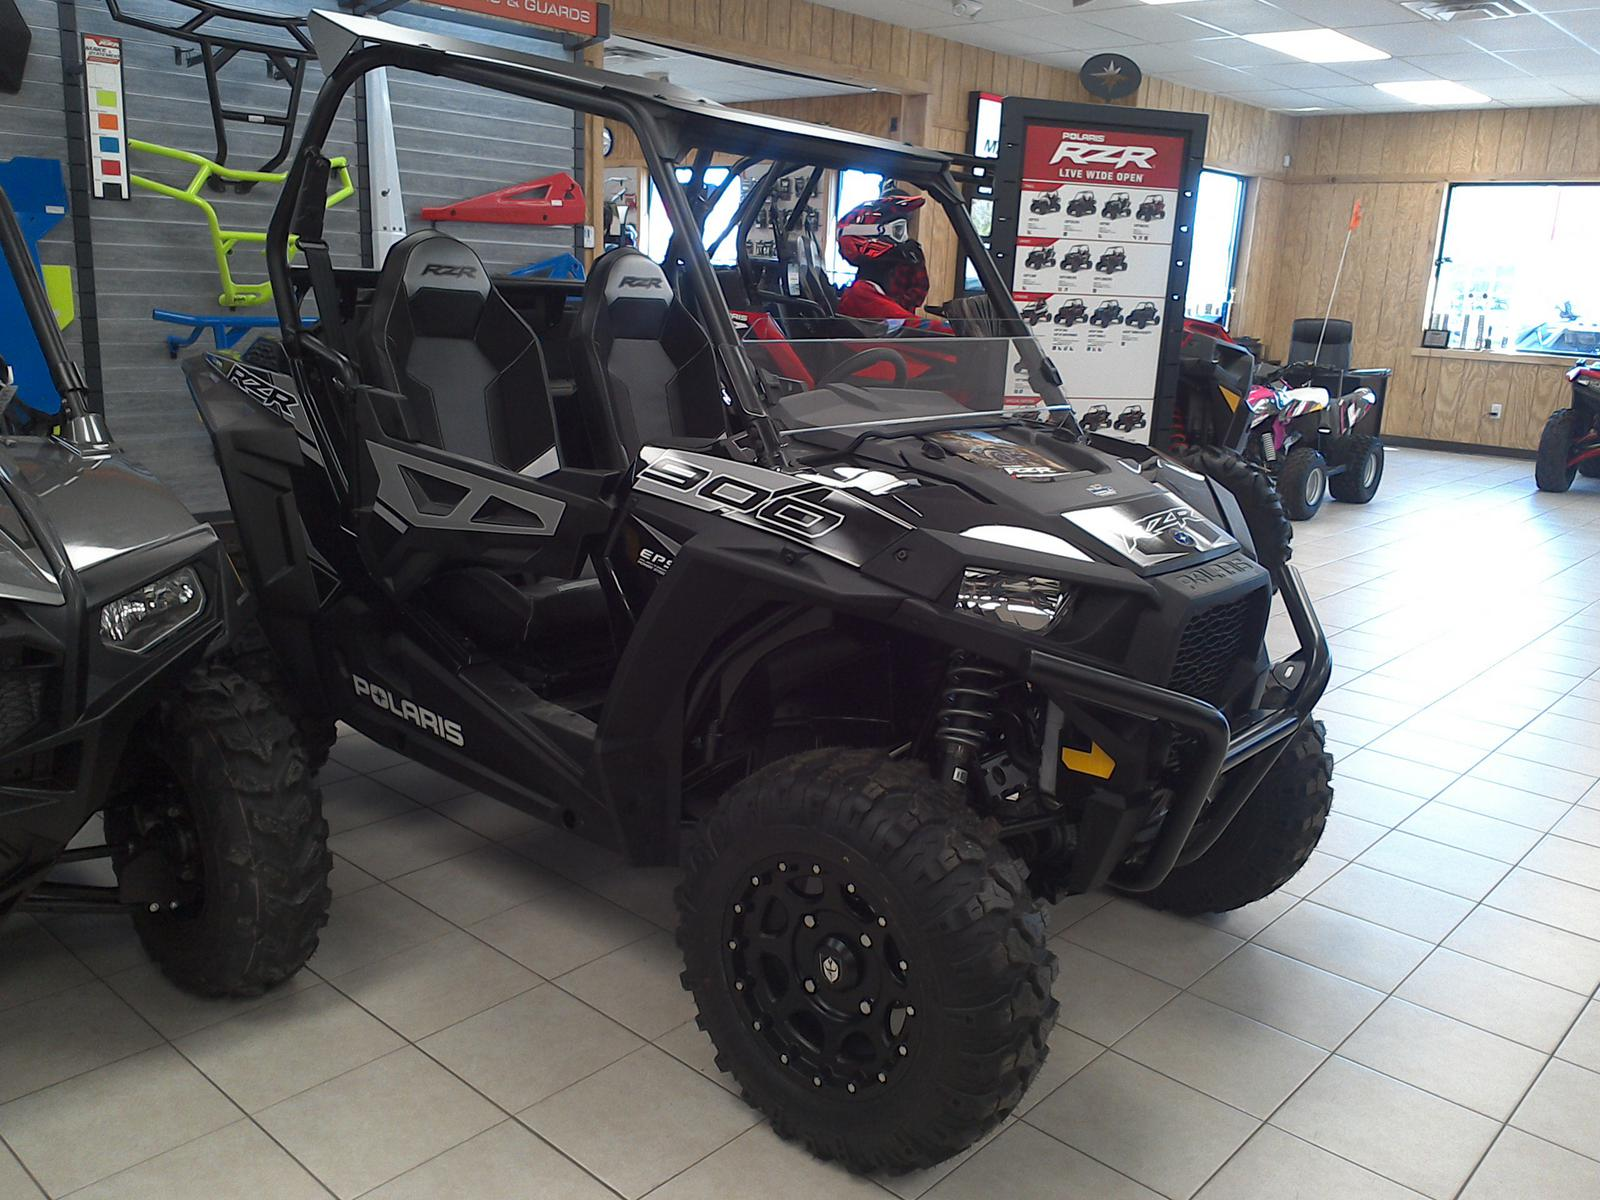 2019 polaris industries rzr� 900 eps - black pearl